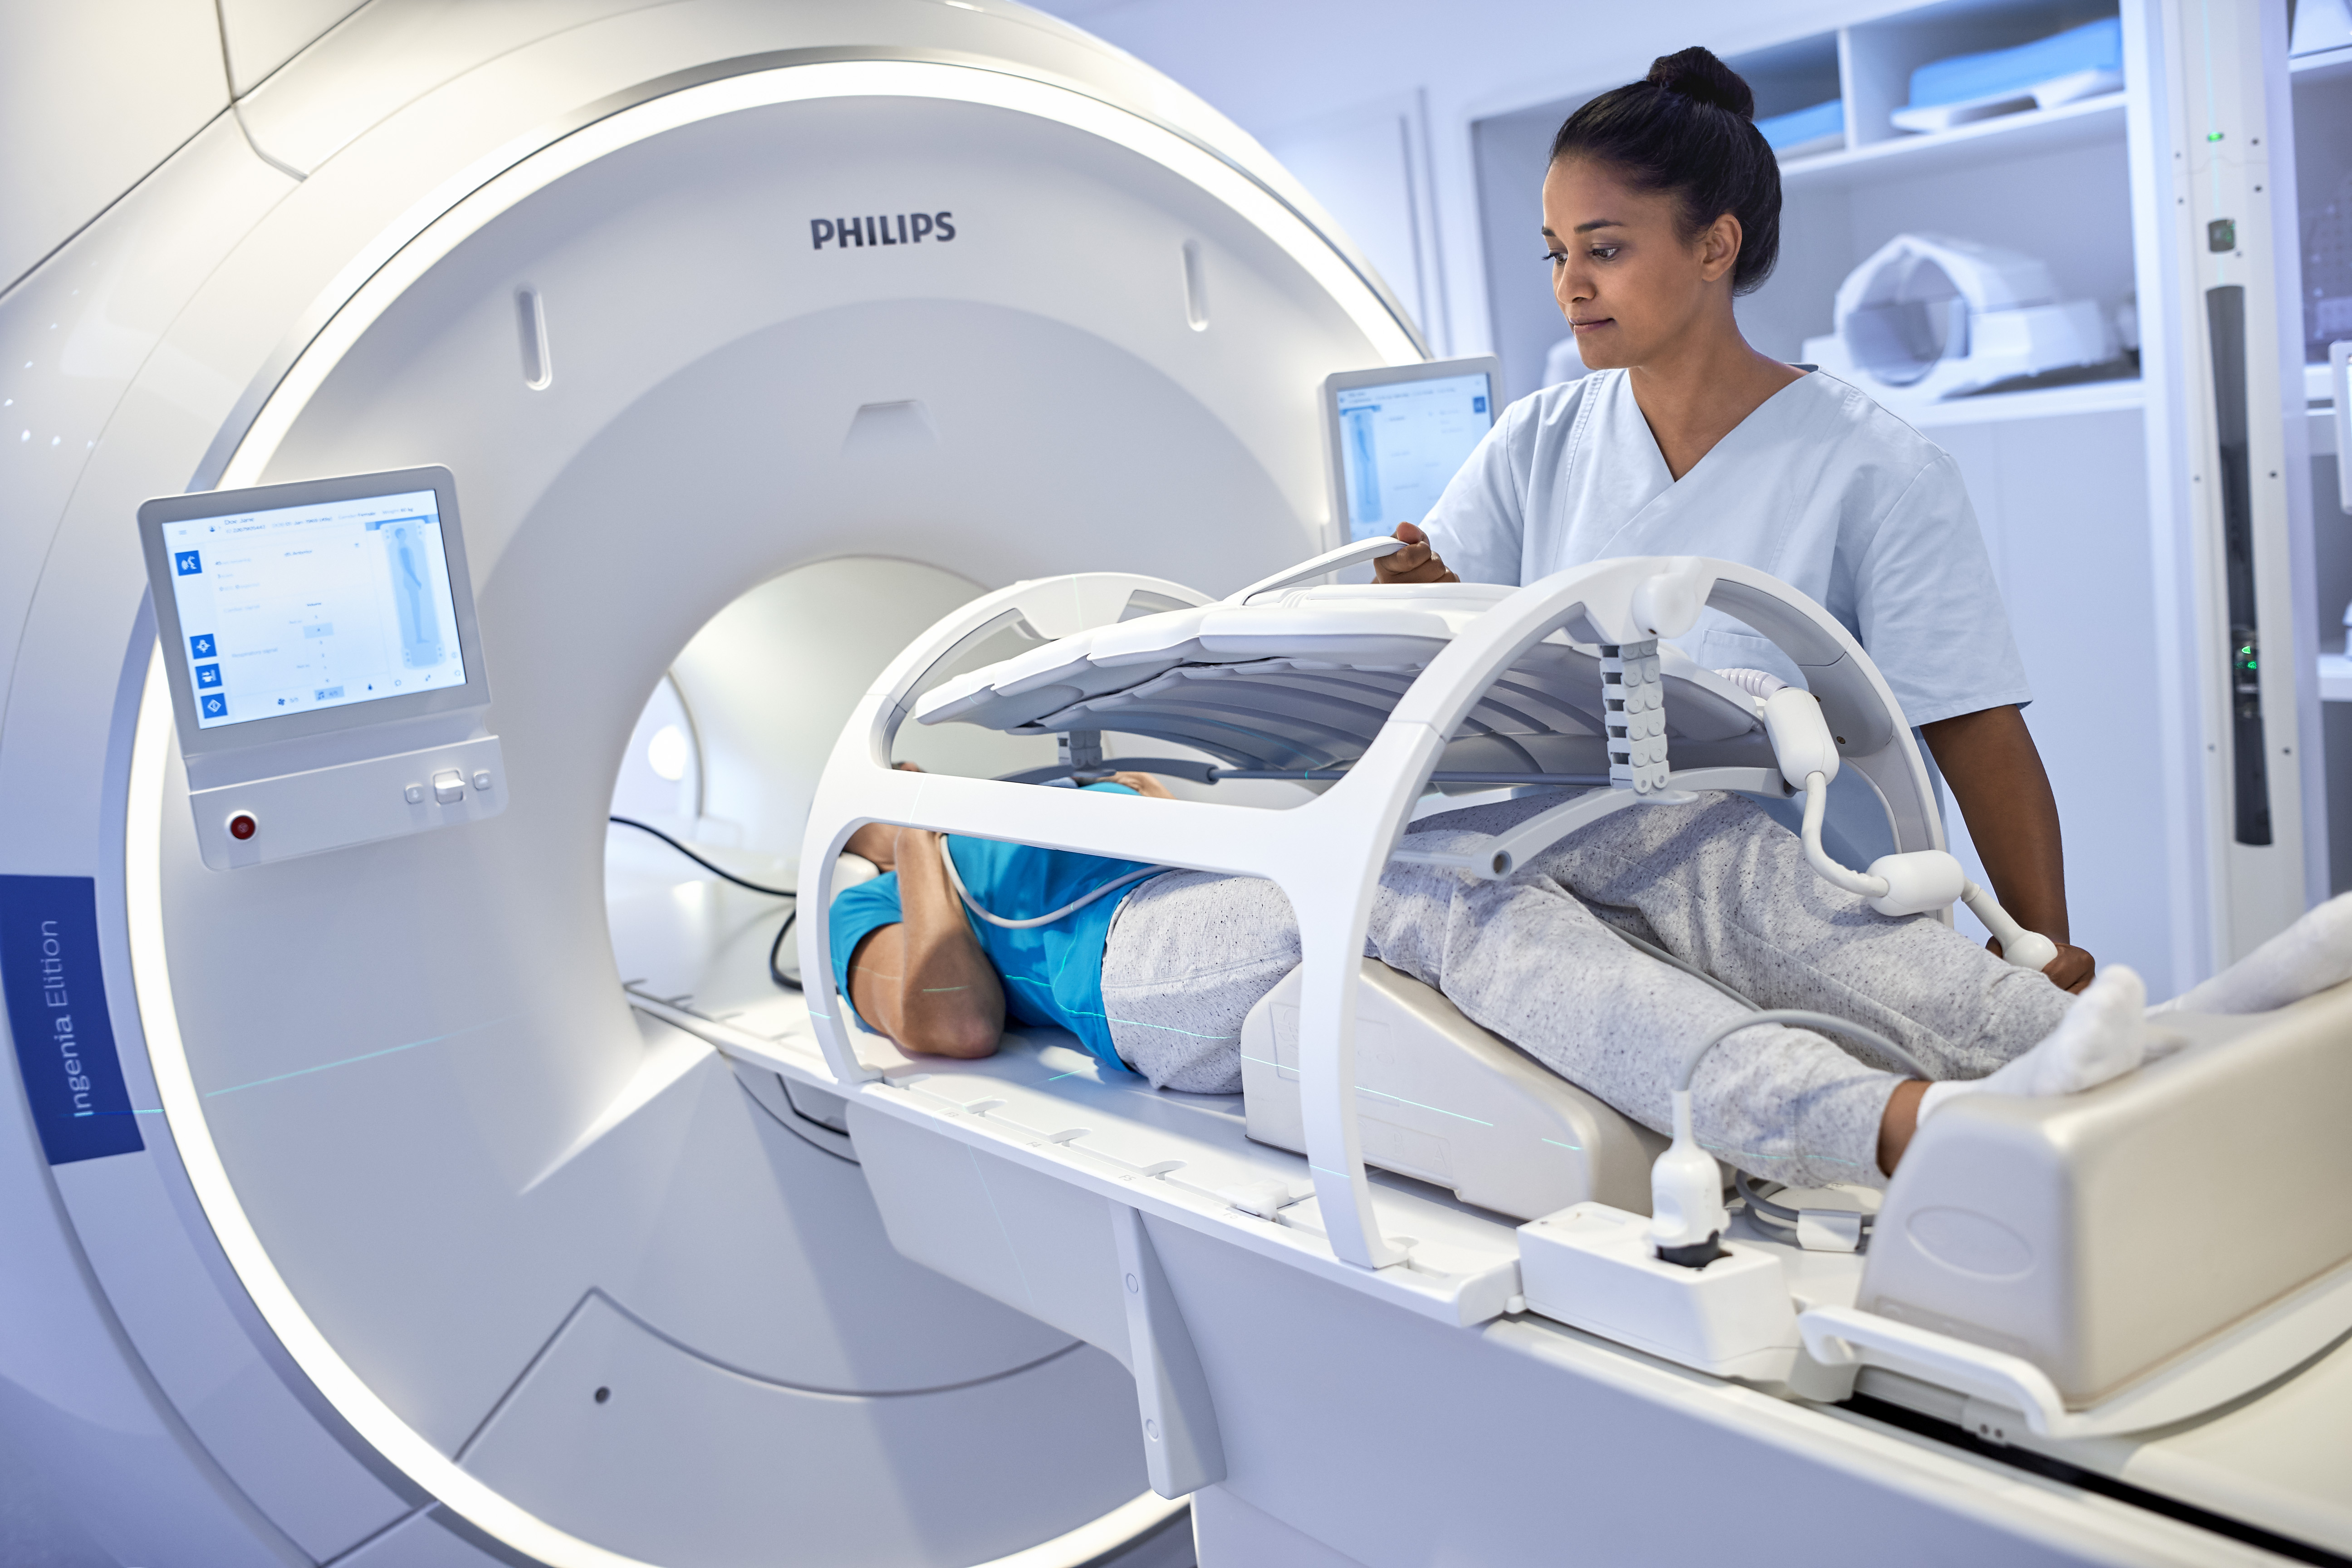 ea8c264a358 Philips unveils new radiation oncology portfolio at ASTRO 2018 ...